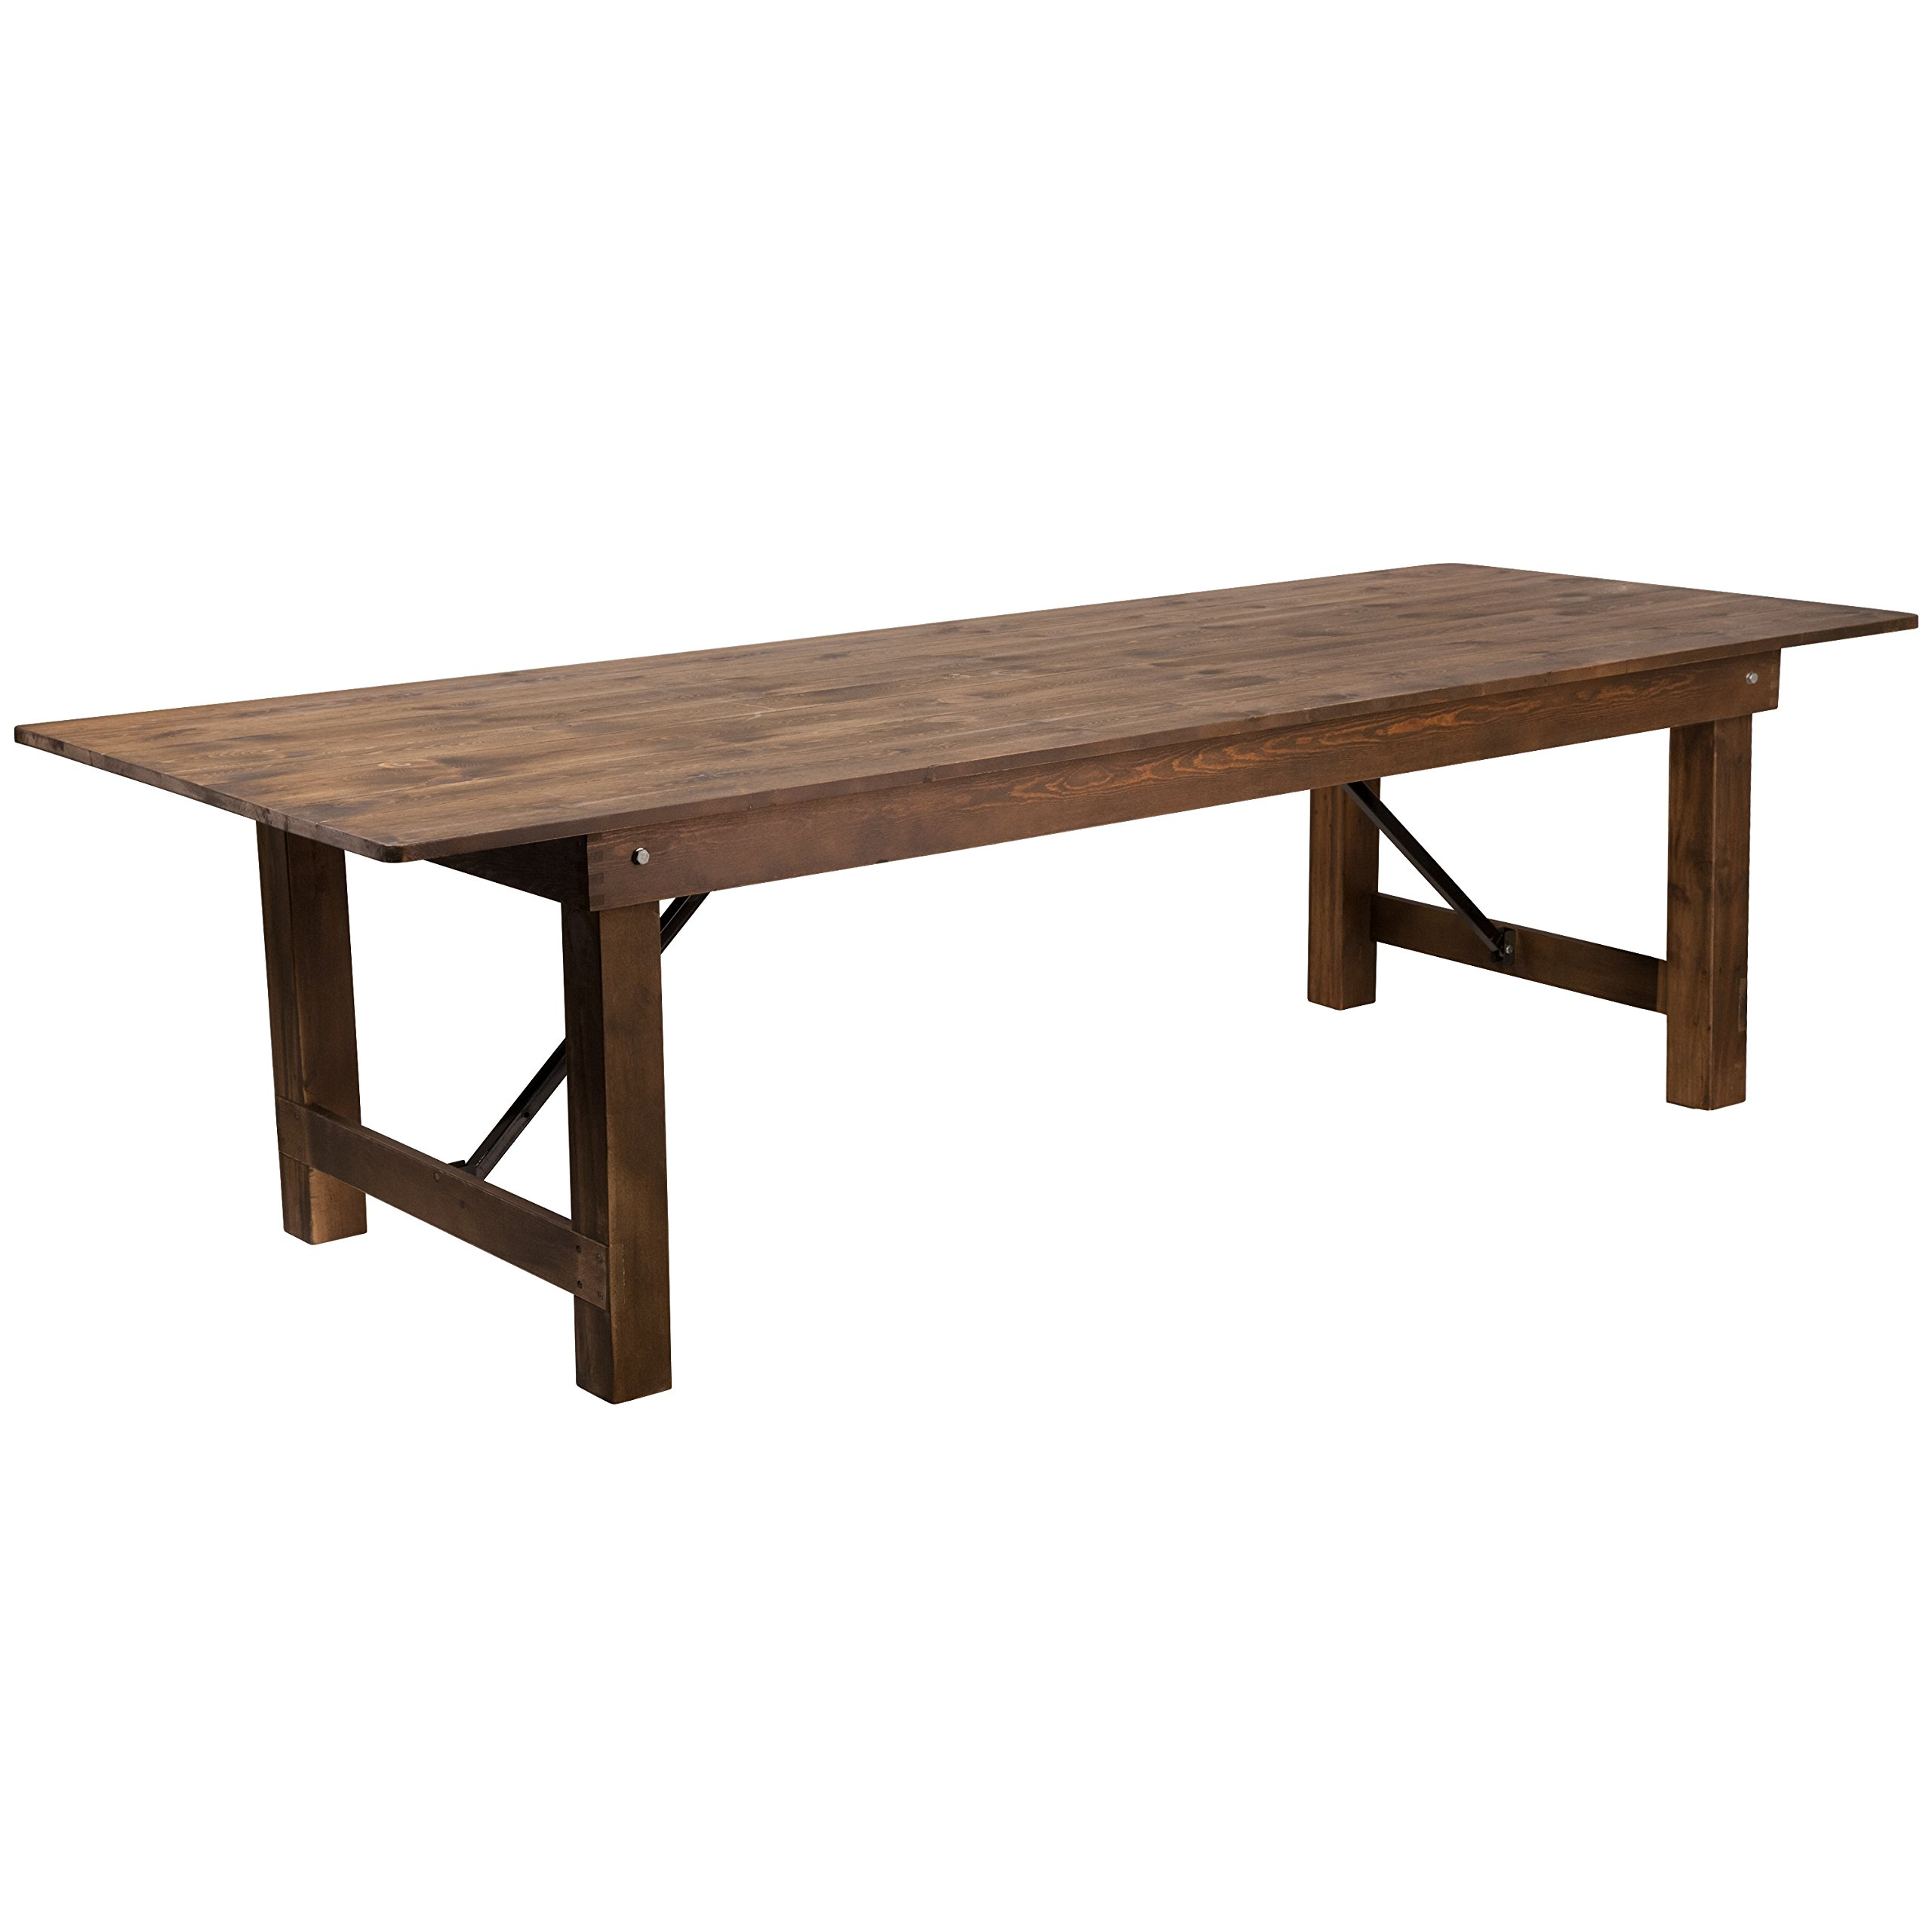 Flash Furniture HERCULES Series 9' x 40'' Rectangular Antique Rustic Solid Pine Folding Farm Table by Flash Furniture